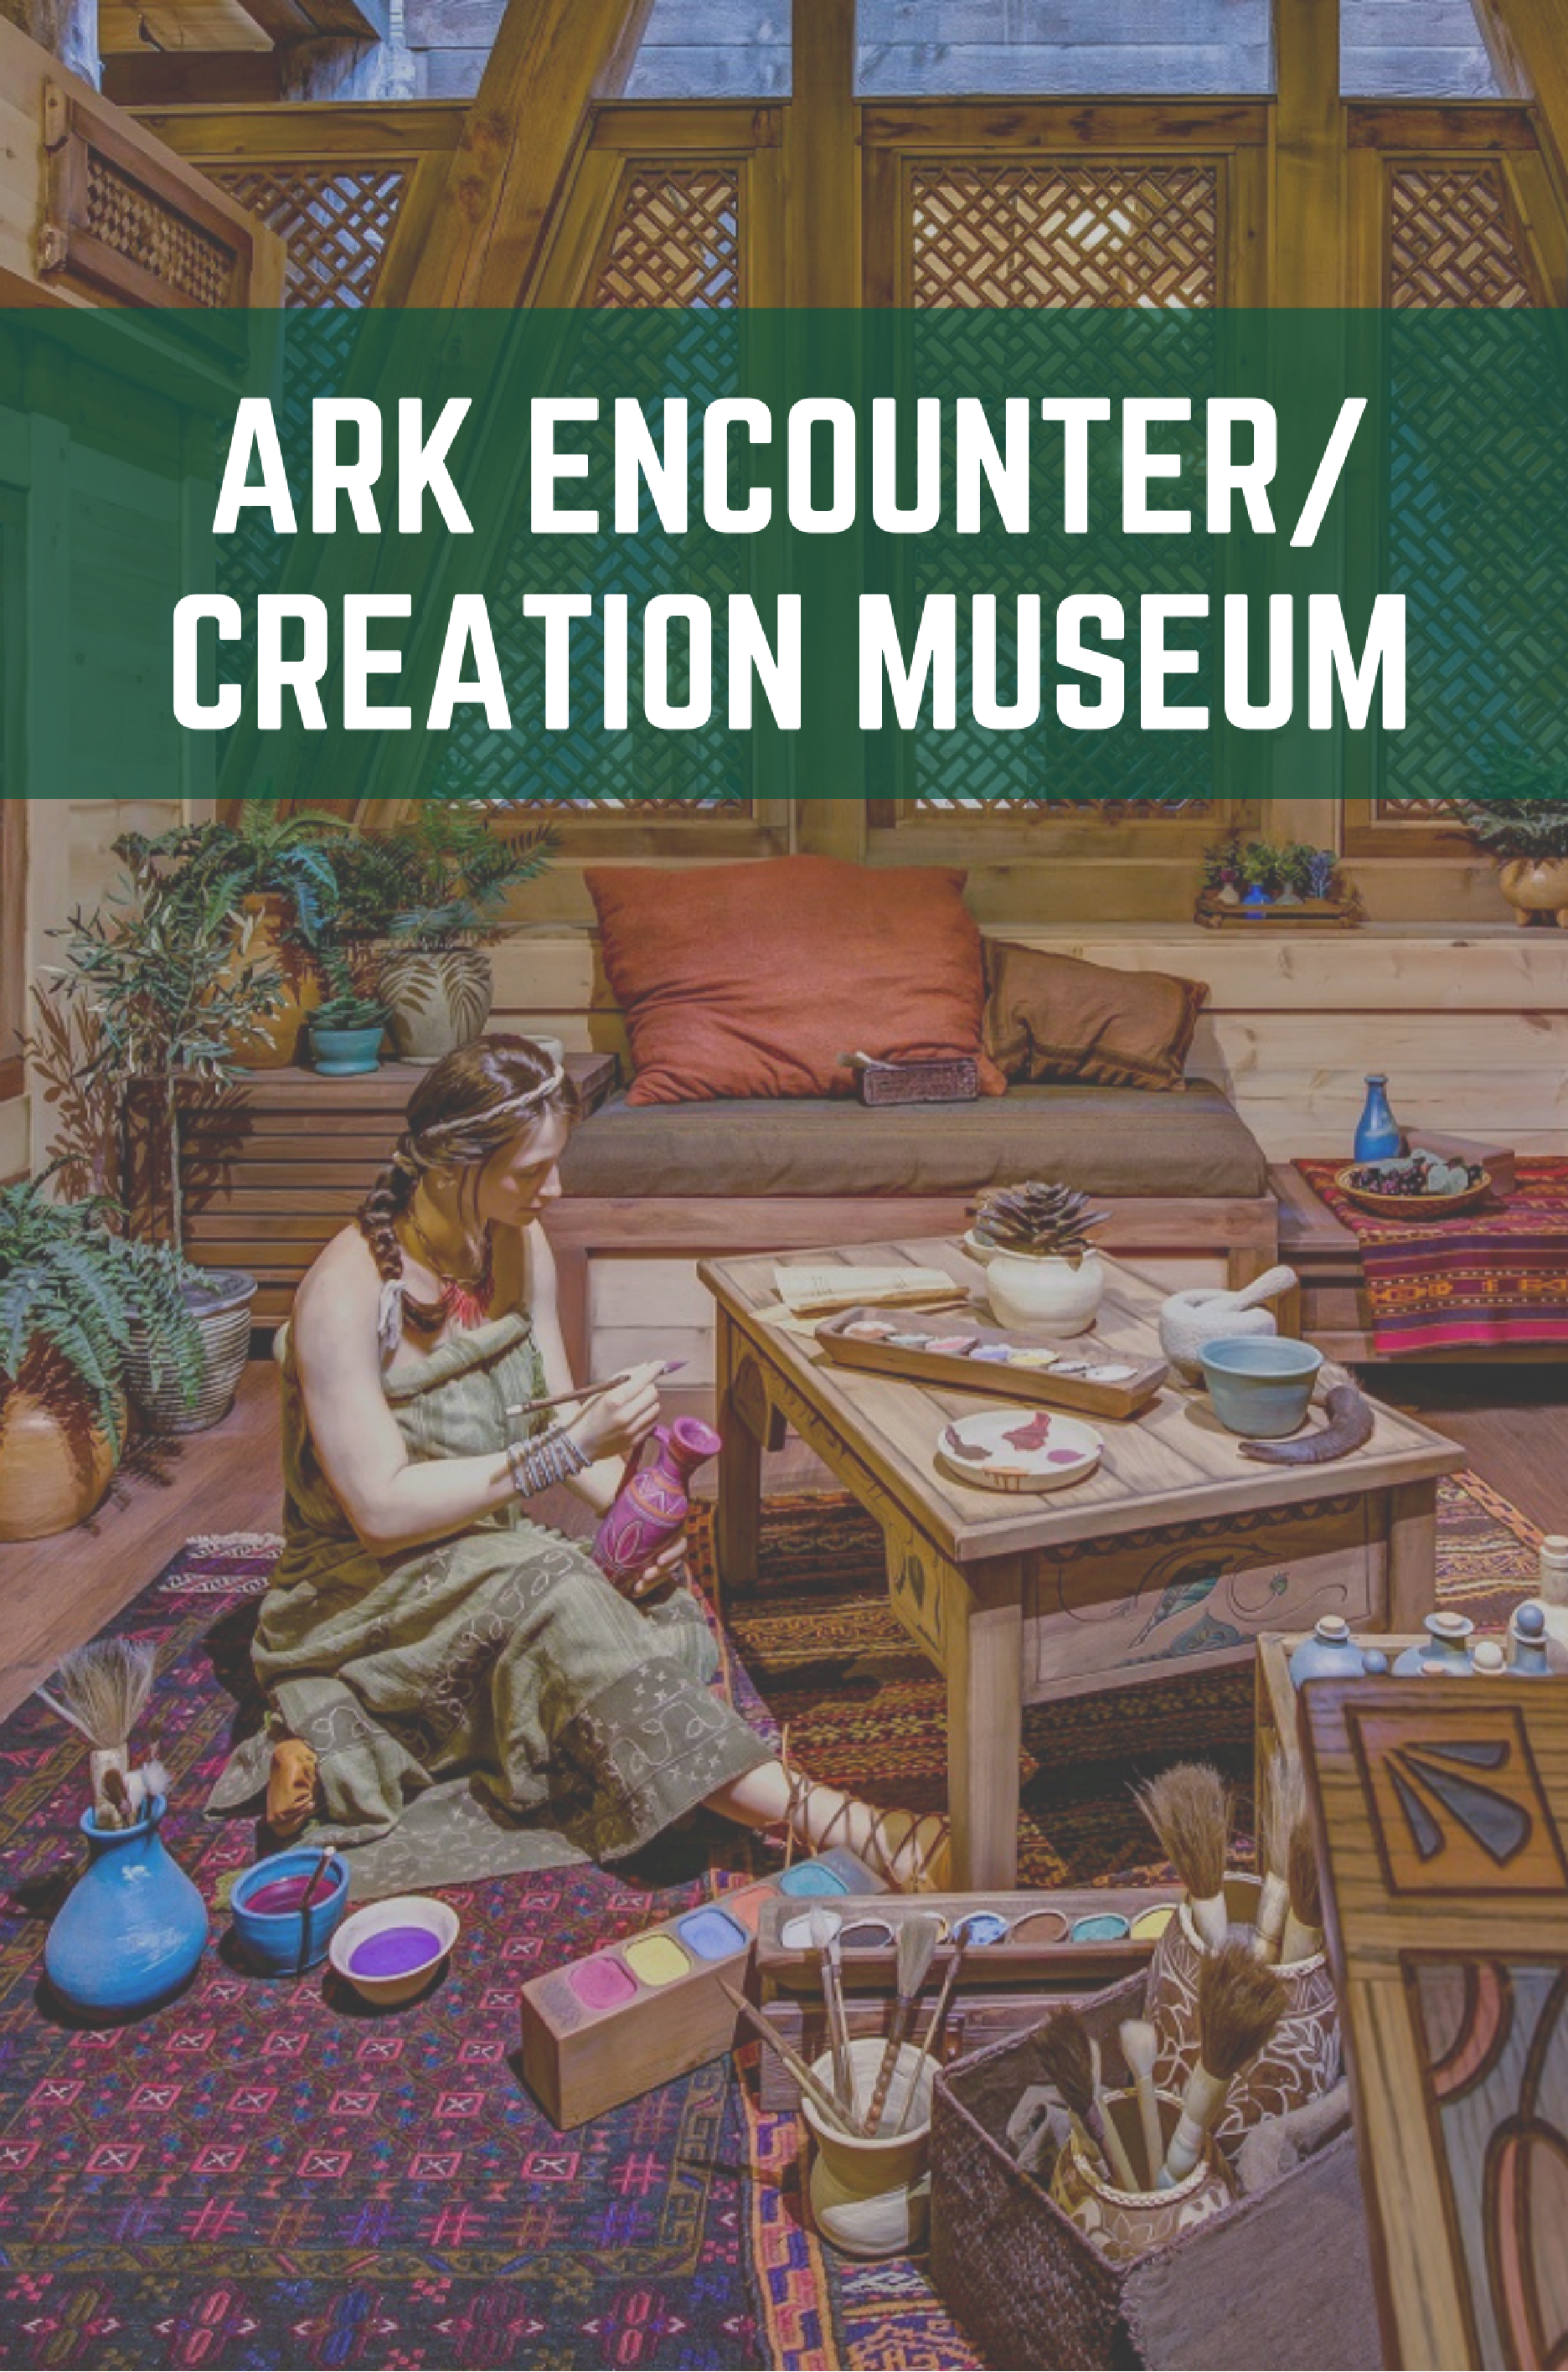 Ark Encounter/Creation Museum